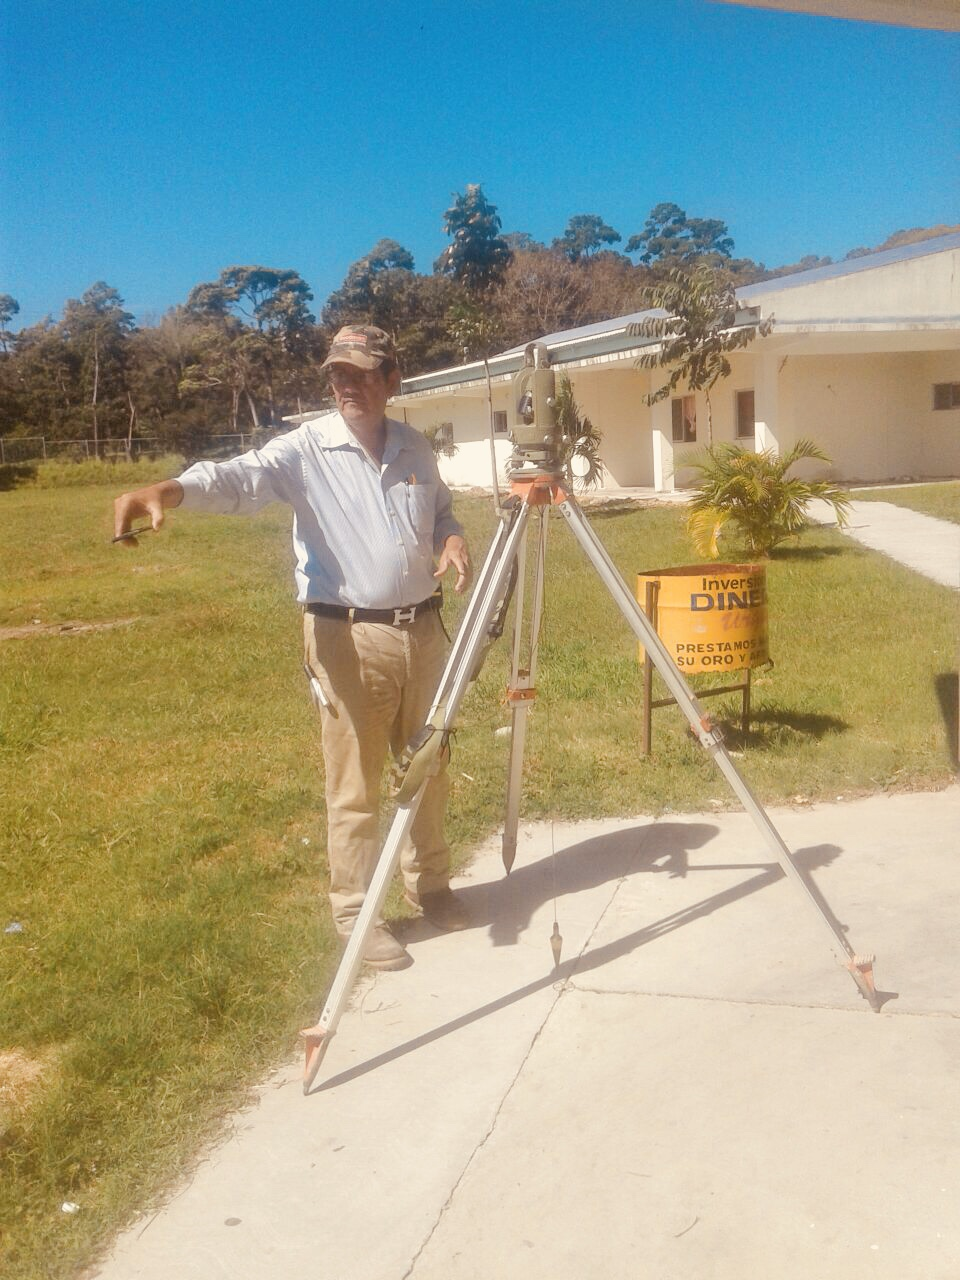 Connect Global National Director of Honduras, Jorge Amador, led this Topographer around the land at the hospital for the Maternity Home in La Ceiba last week confirming elevation levels ahead of groundbreaking and foundation work.